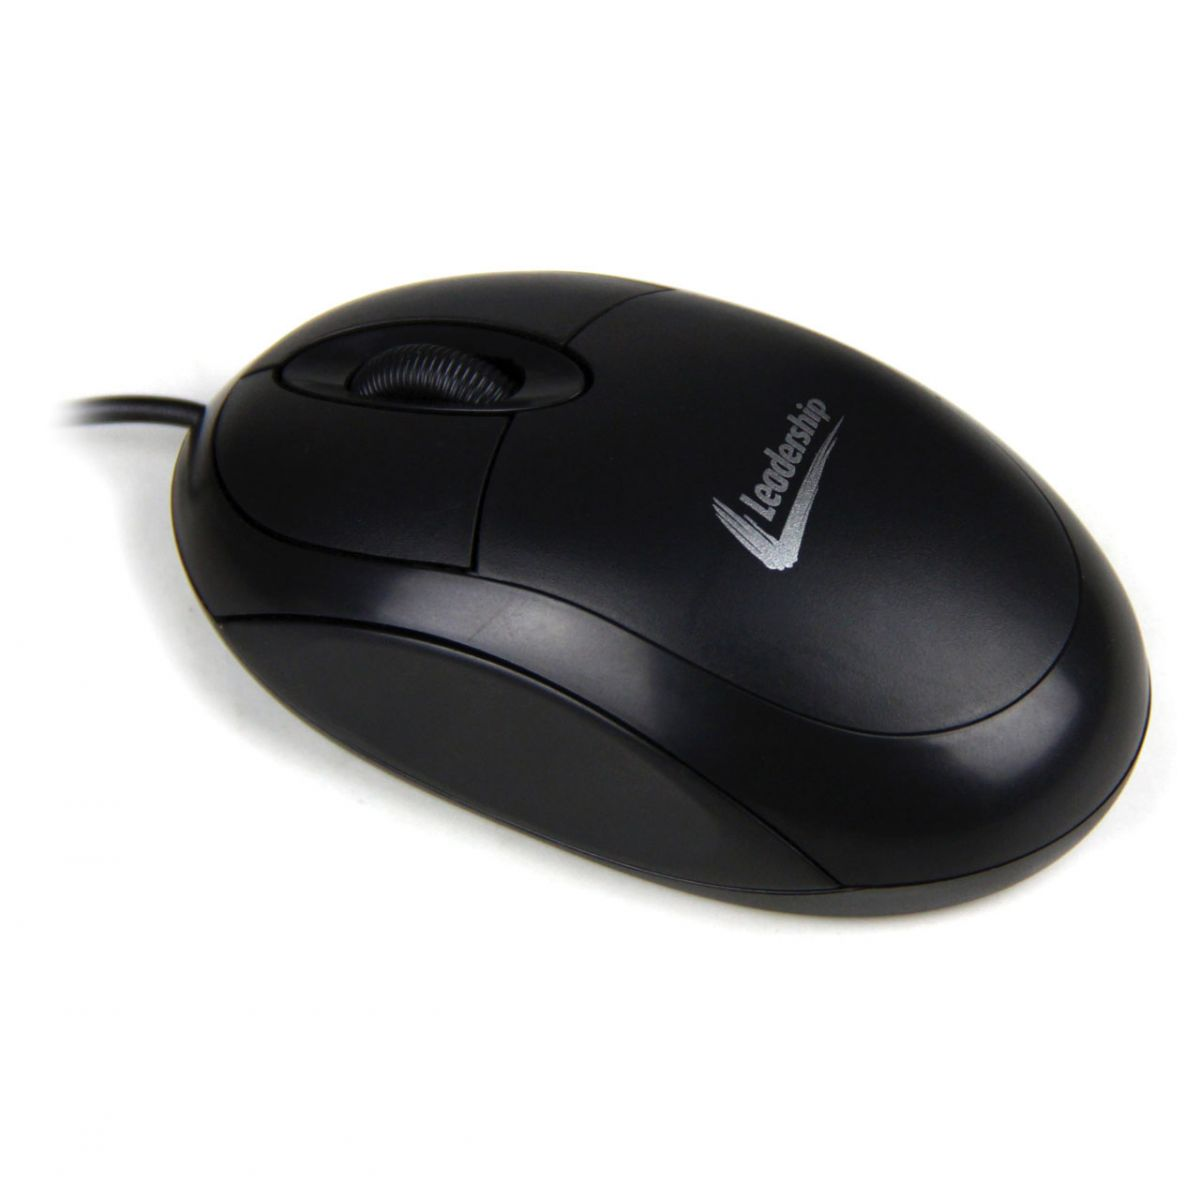 Mouse USB Preto 4576 - Leadership